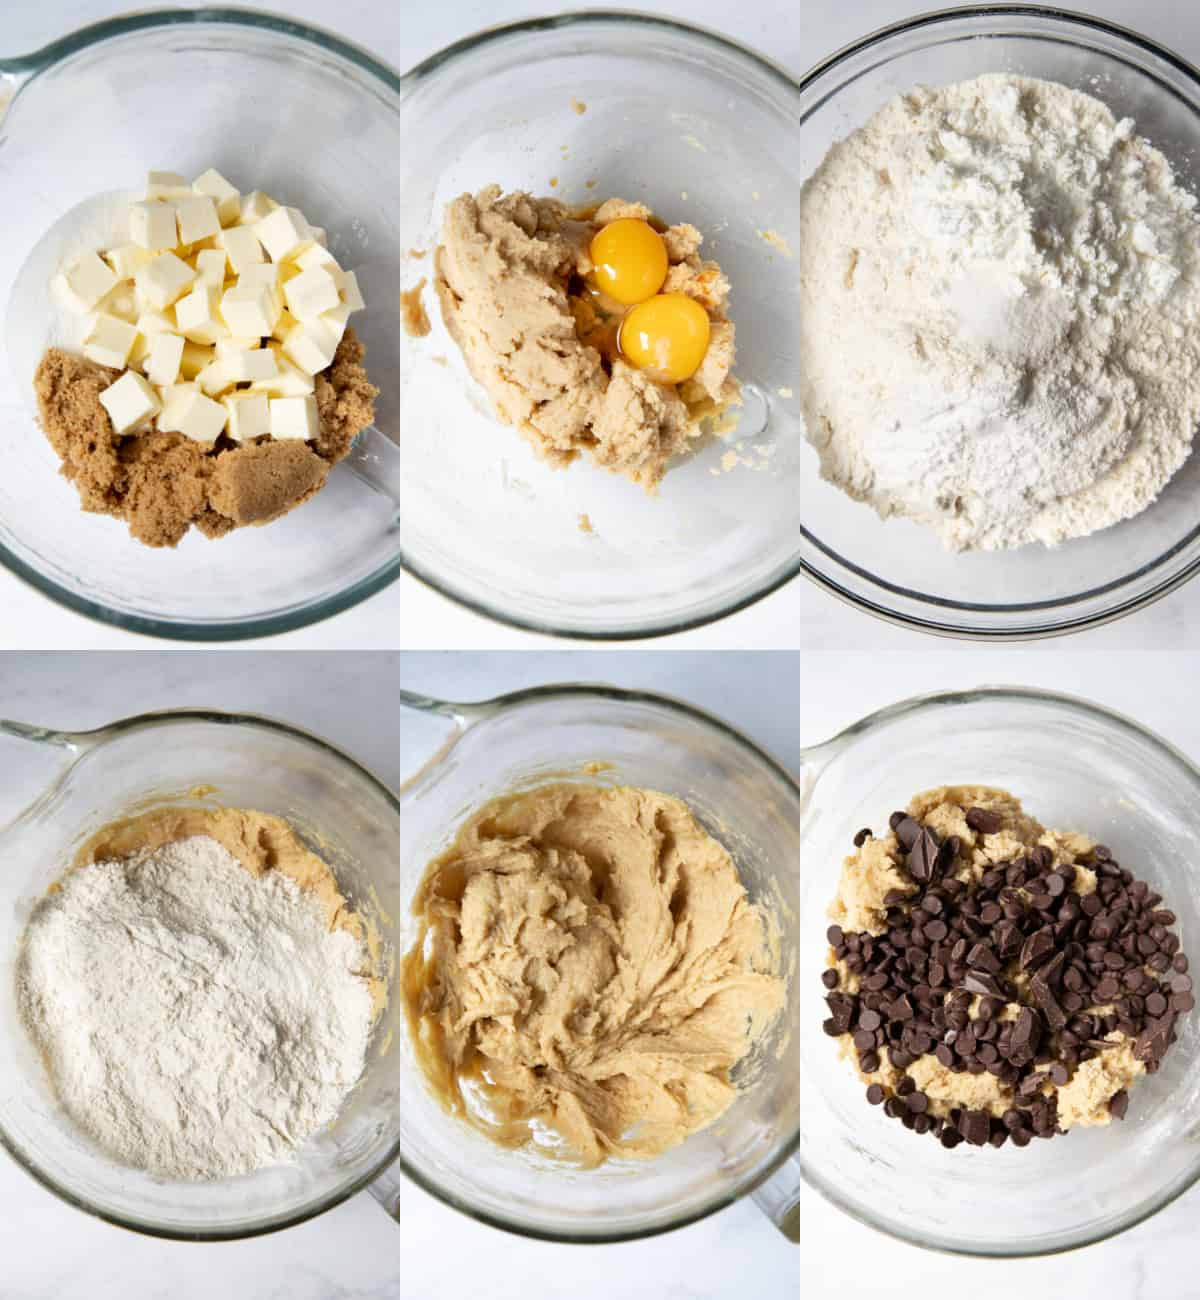 mixing together the ingredients for the cookies in a bowl